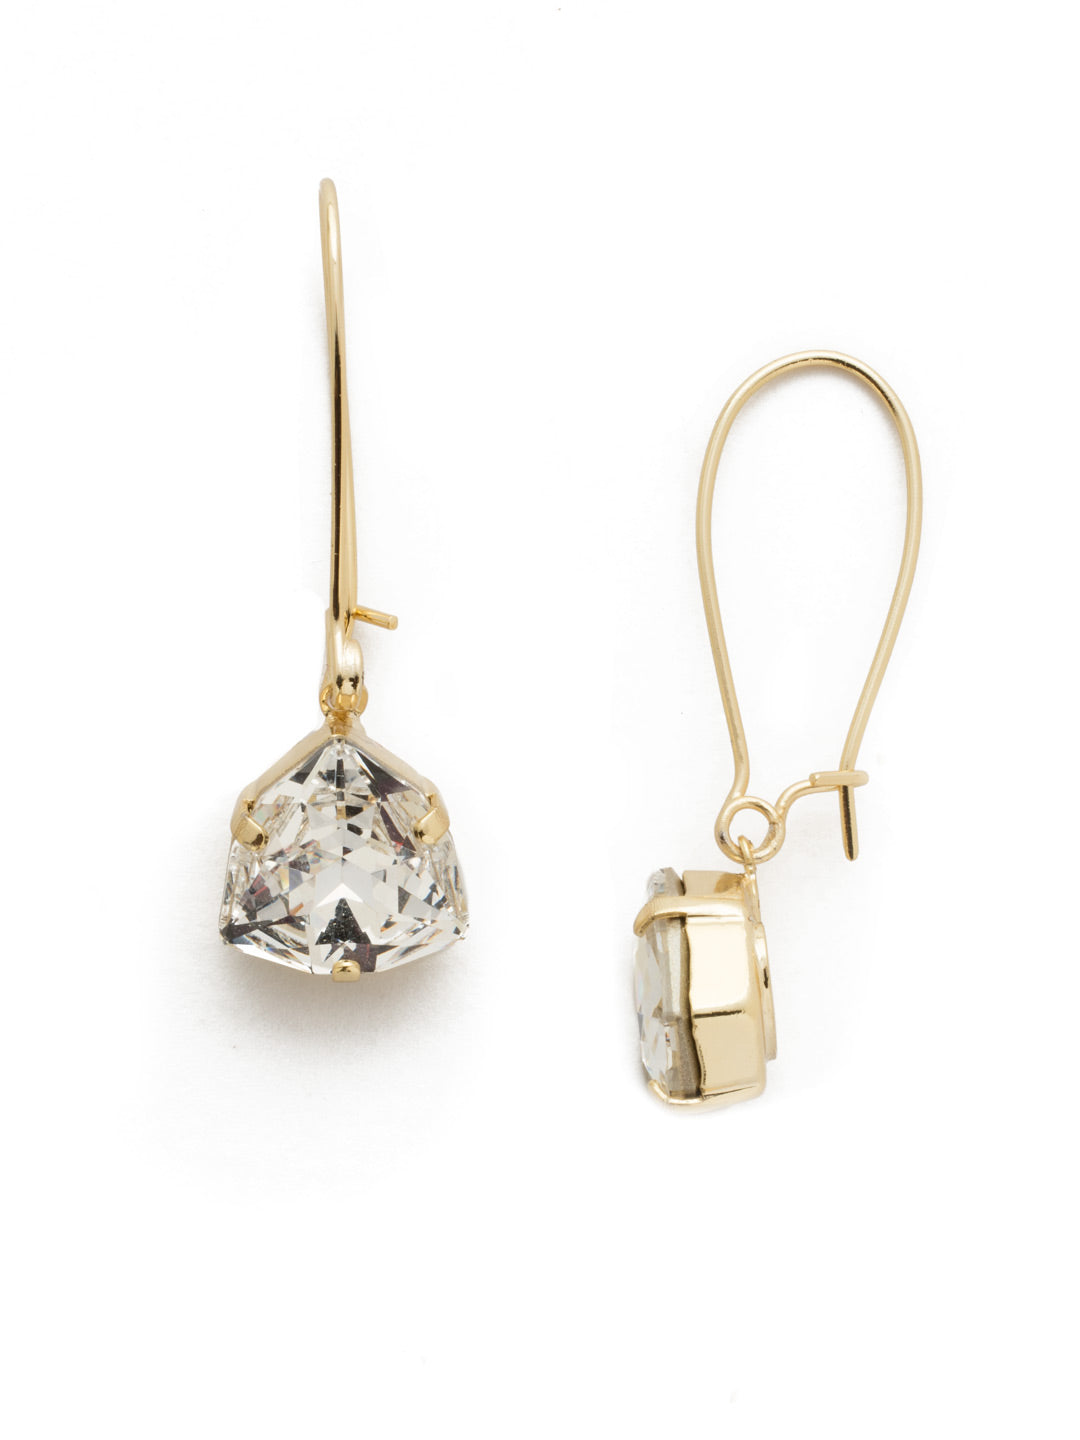 Daily Rep Crystal Dangle Earrings - 4EEK41BGCRY